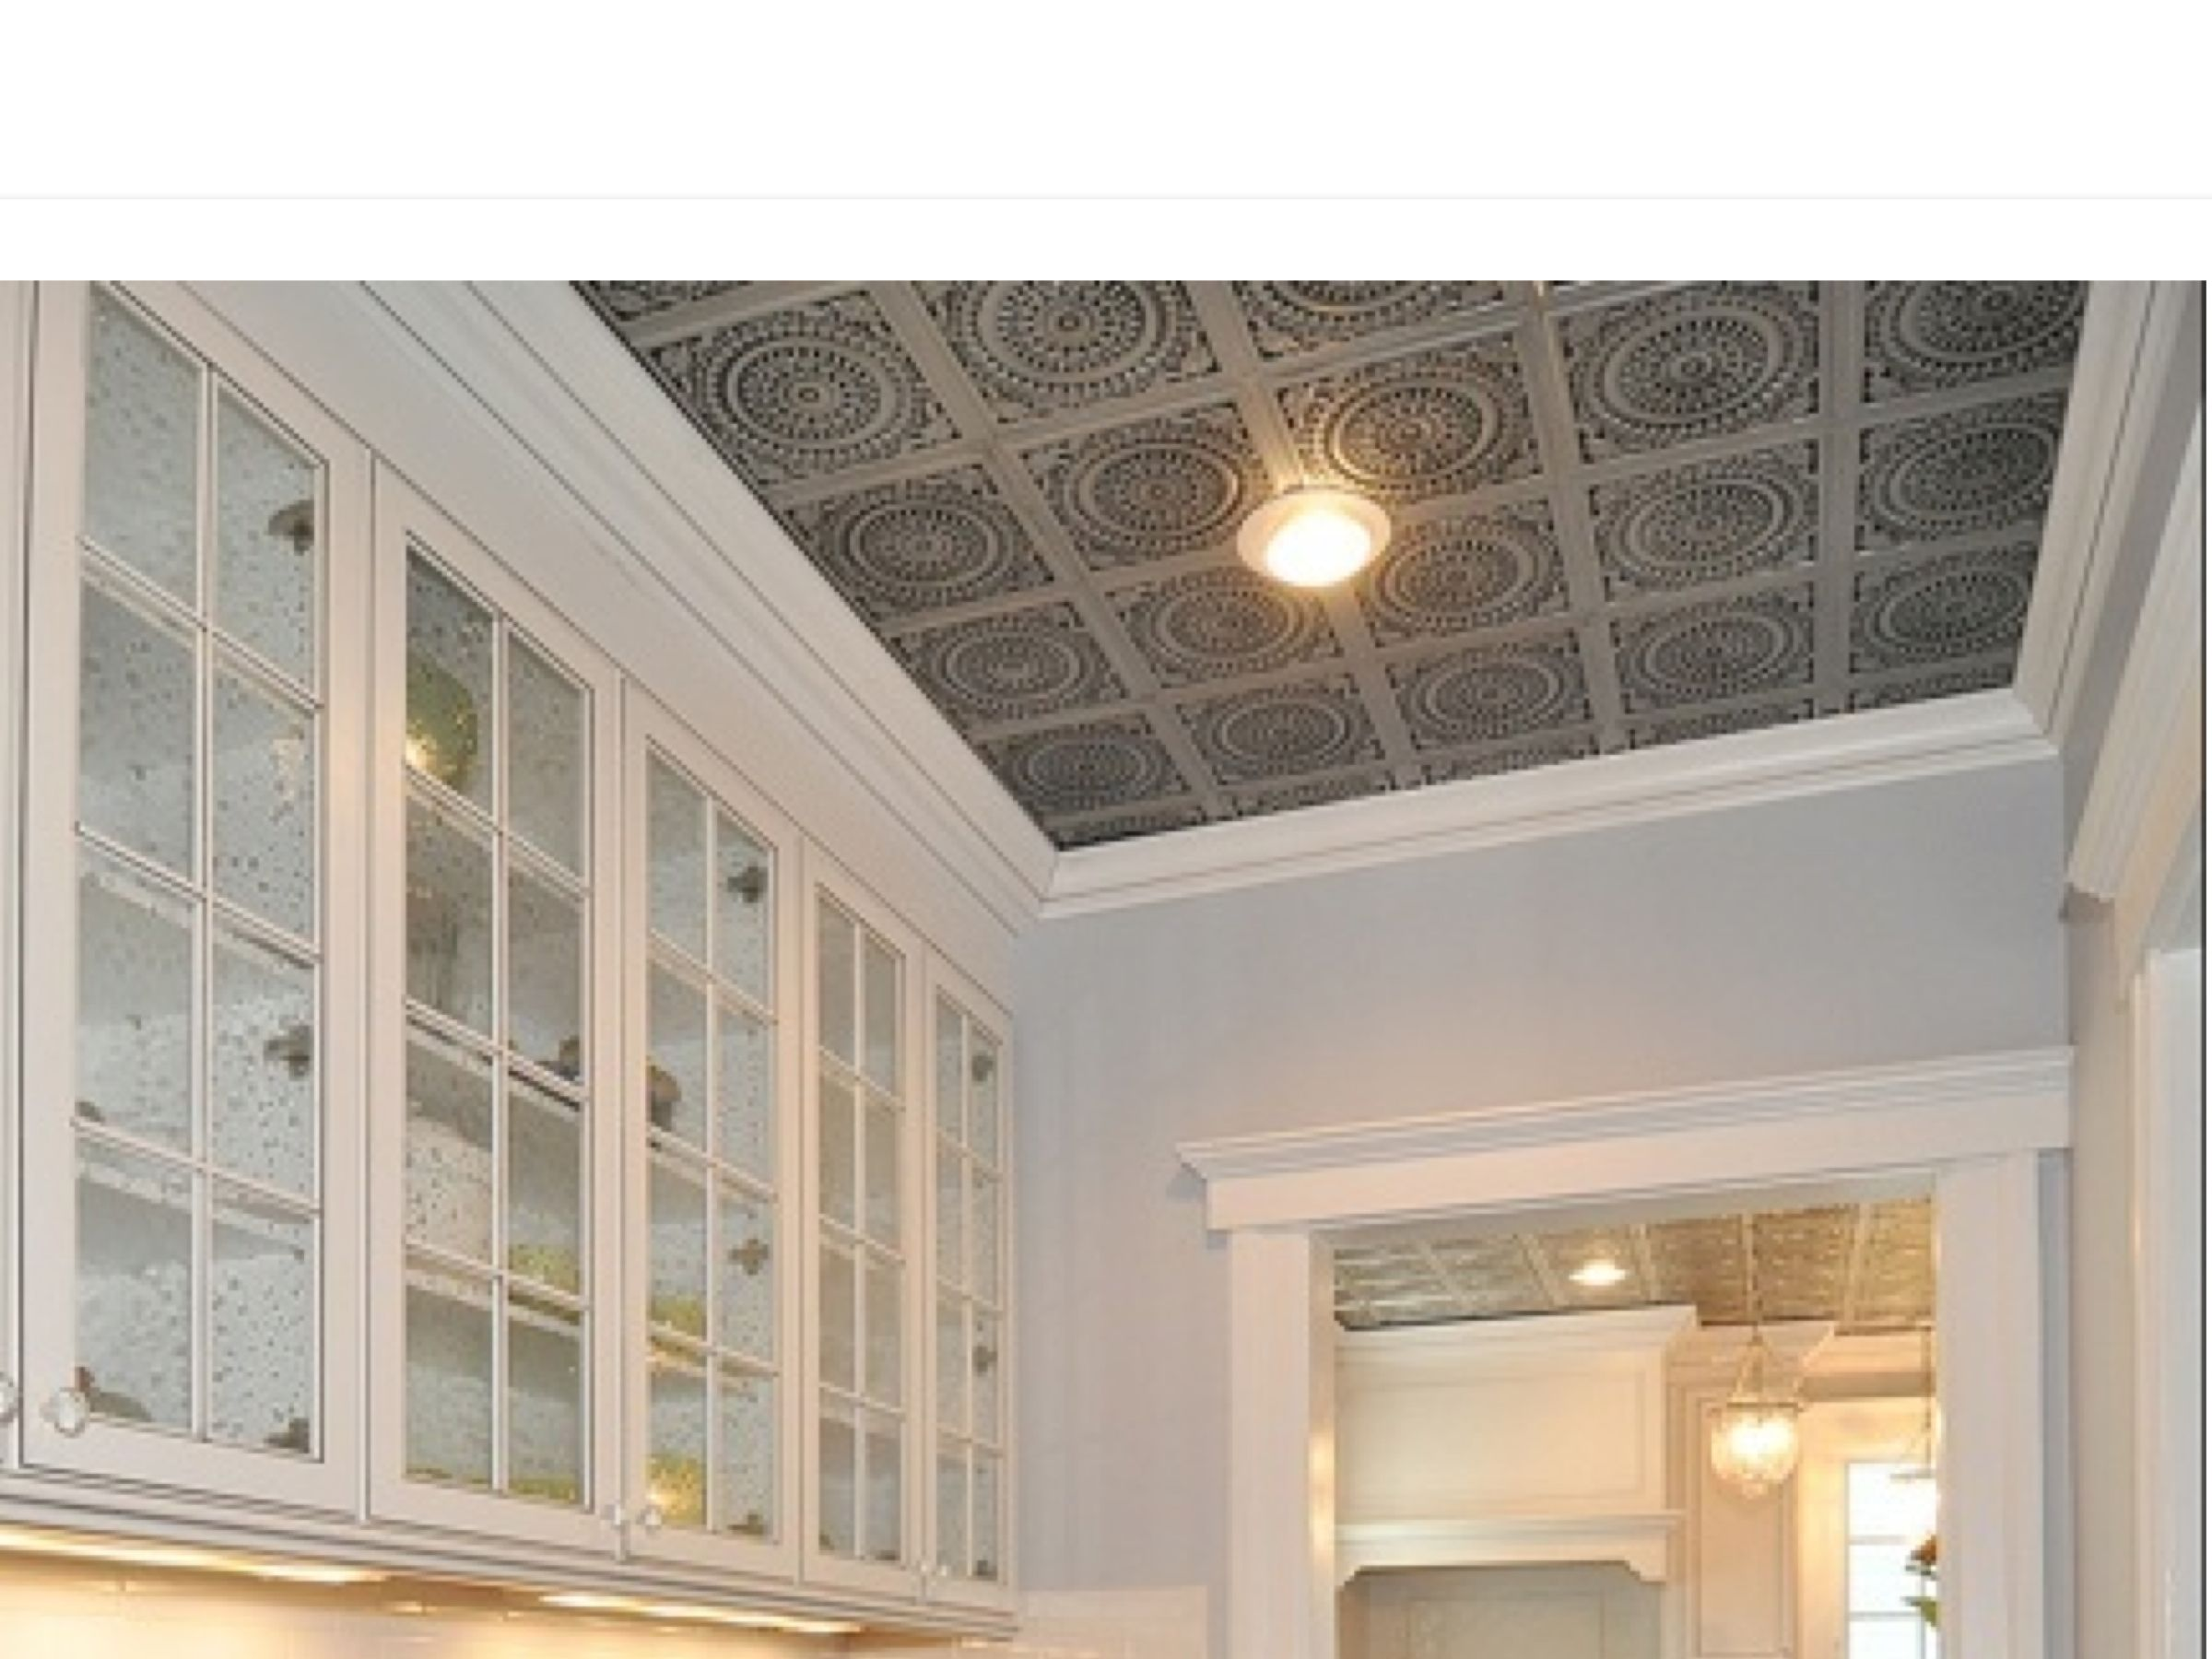 Tin roof ceiling tiles images tile flooring design ideas tin roof ceiling tiles image collections tile flooring design ideas tin roof ceiling tiles images tile dailygadgetfo Image collections